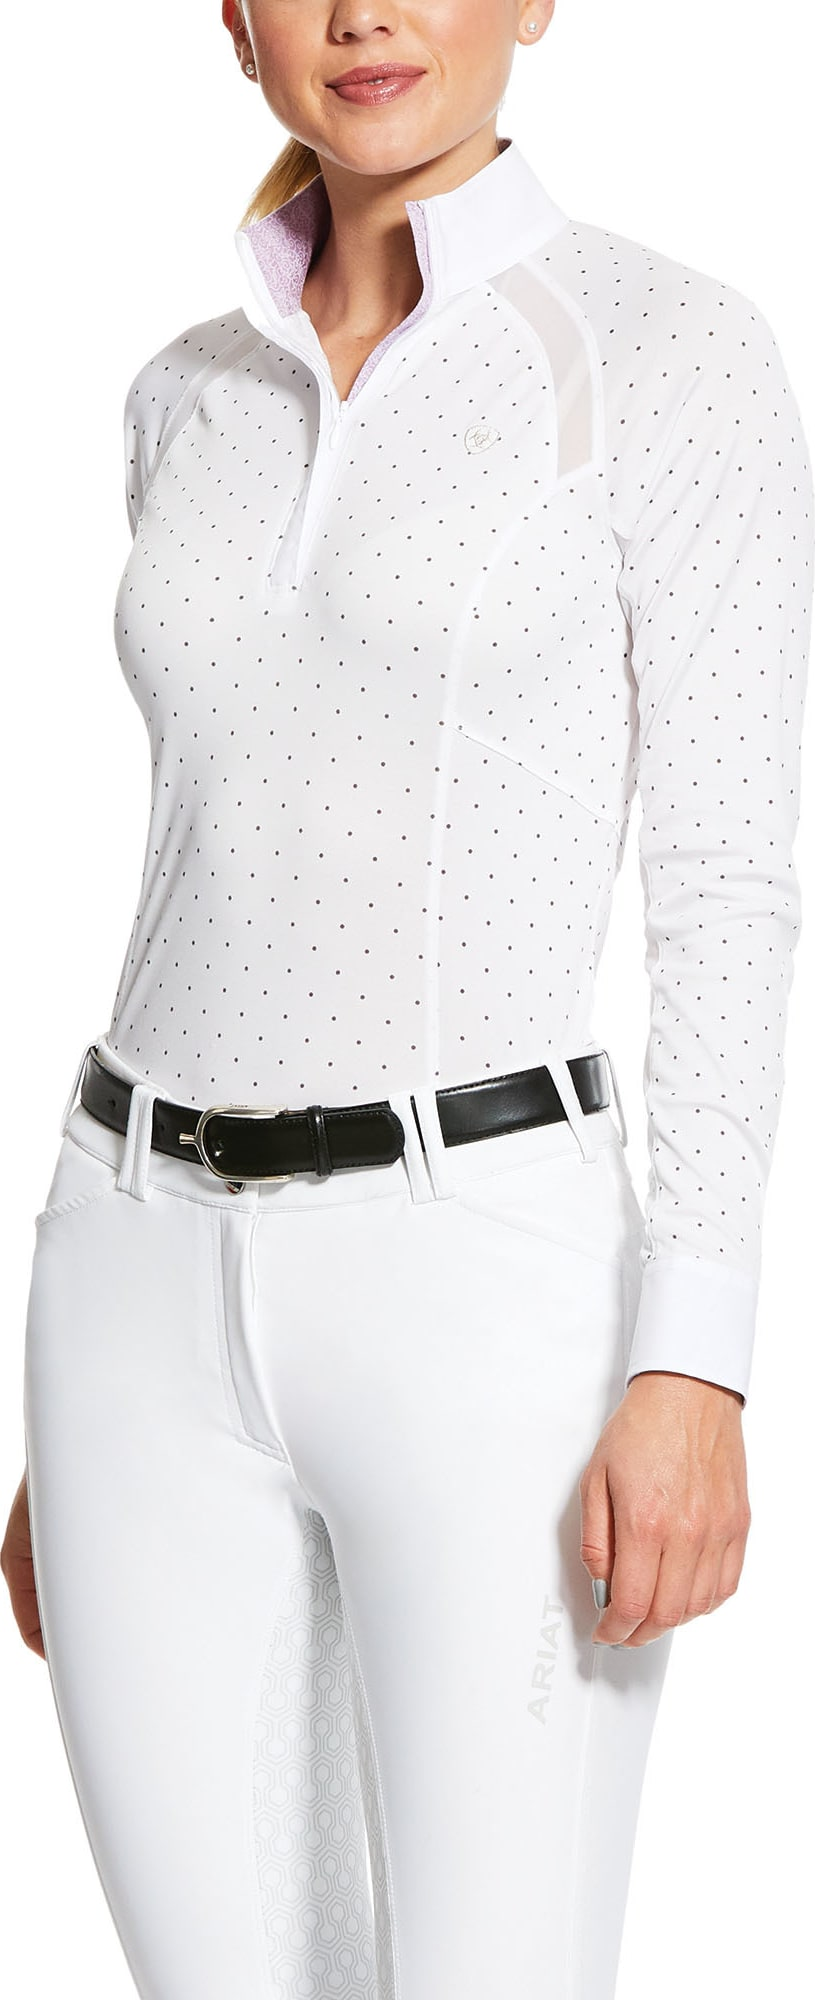 Ariat Women's Sunstopper Pro 2.0 Show Shirt